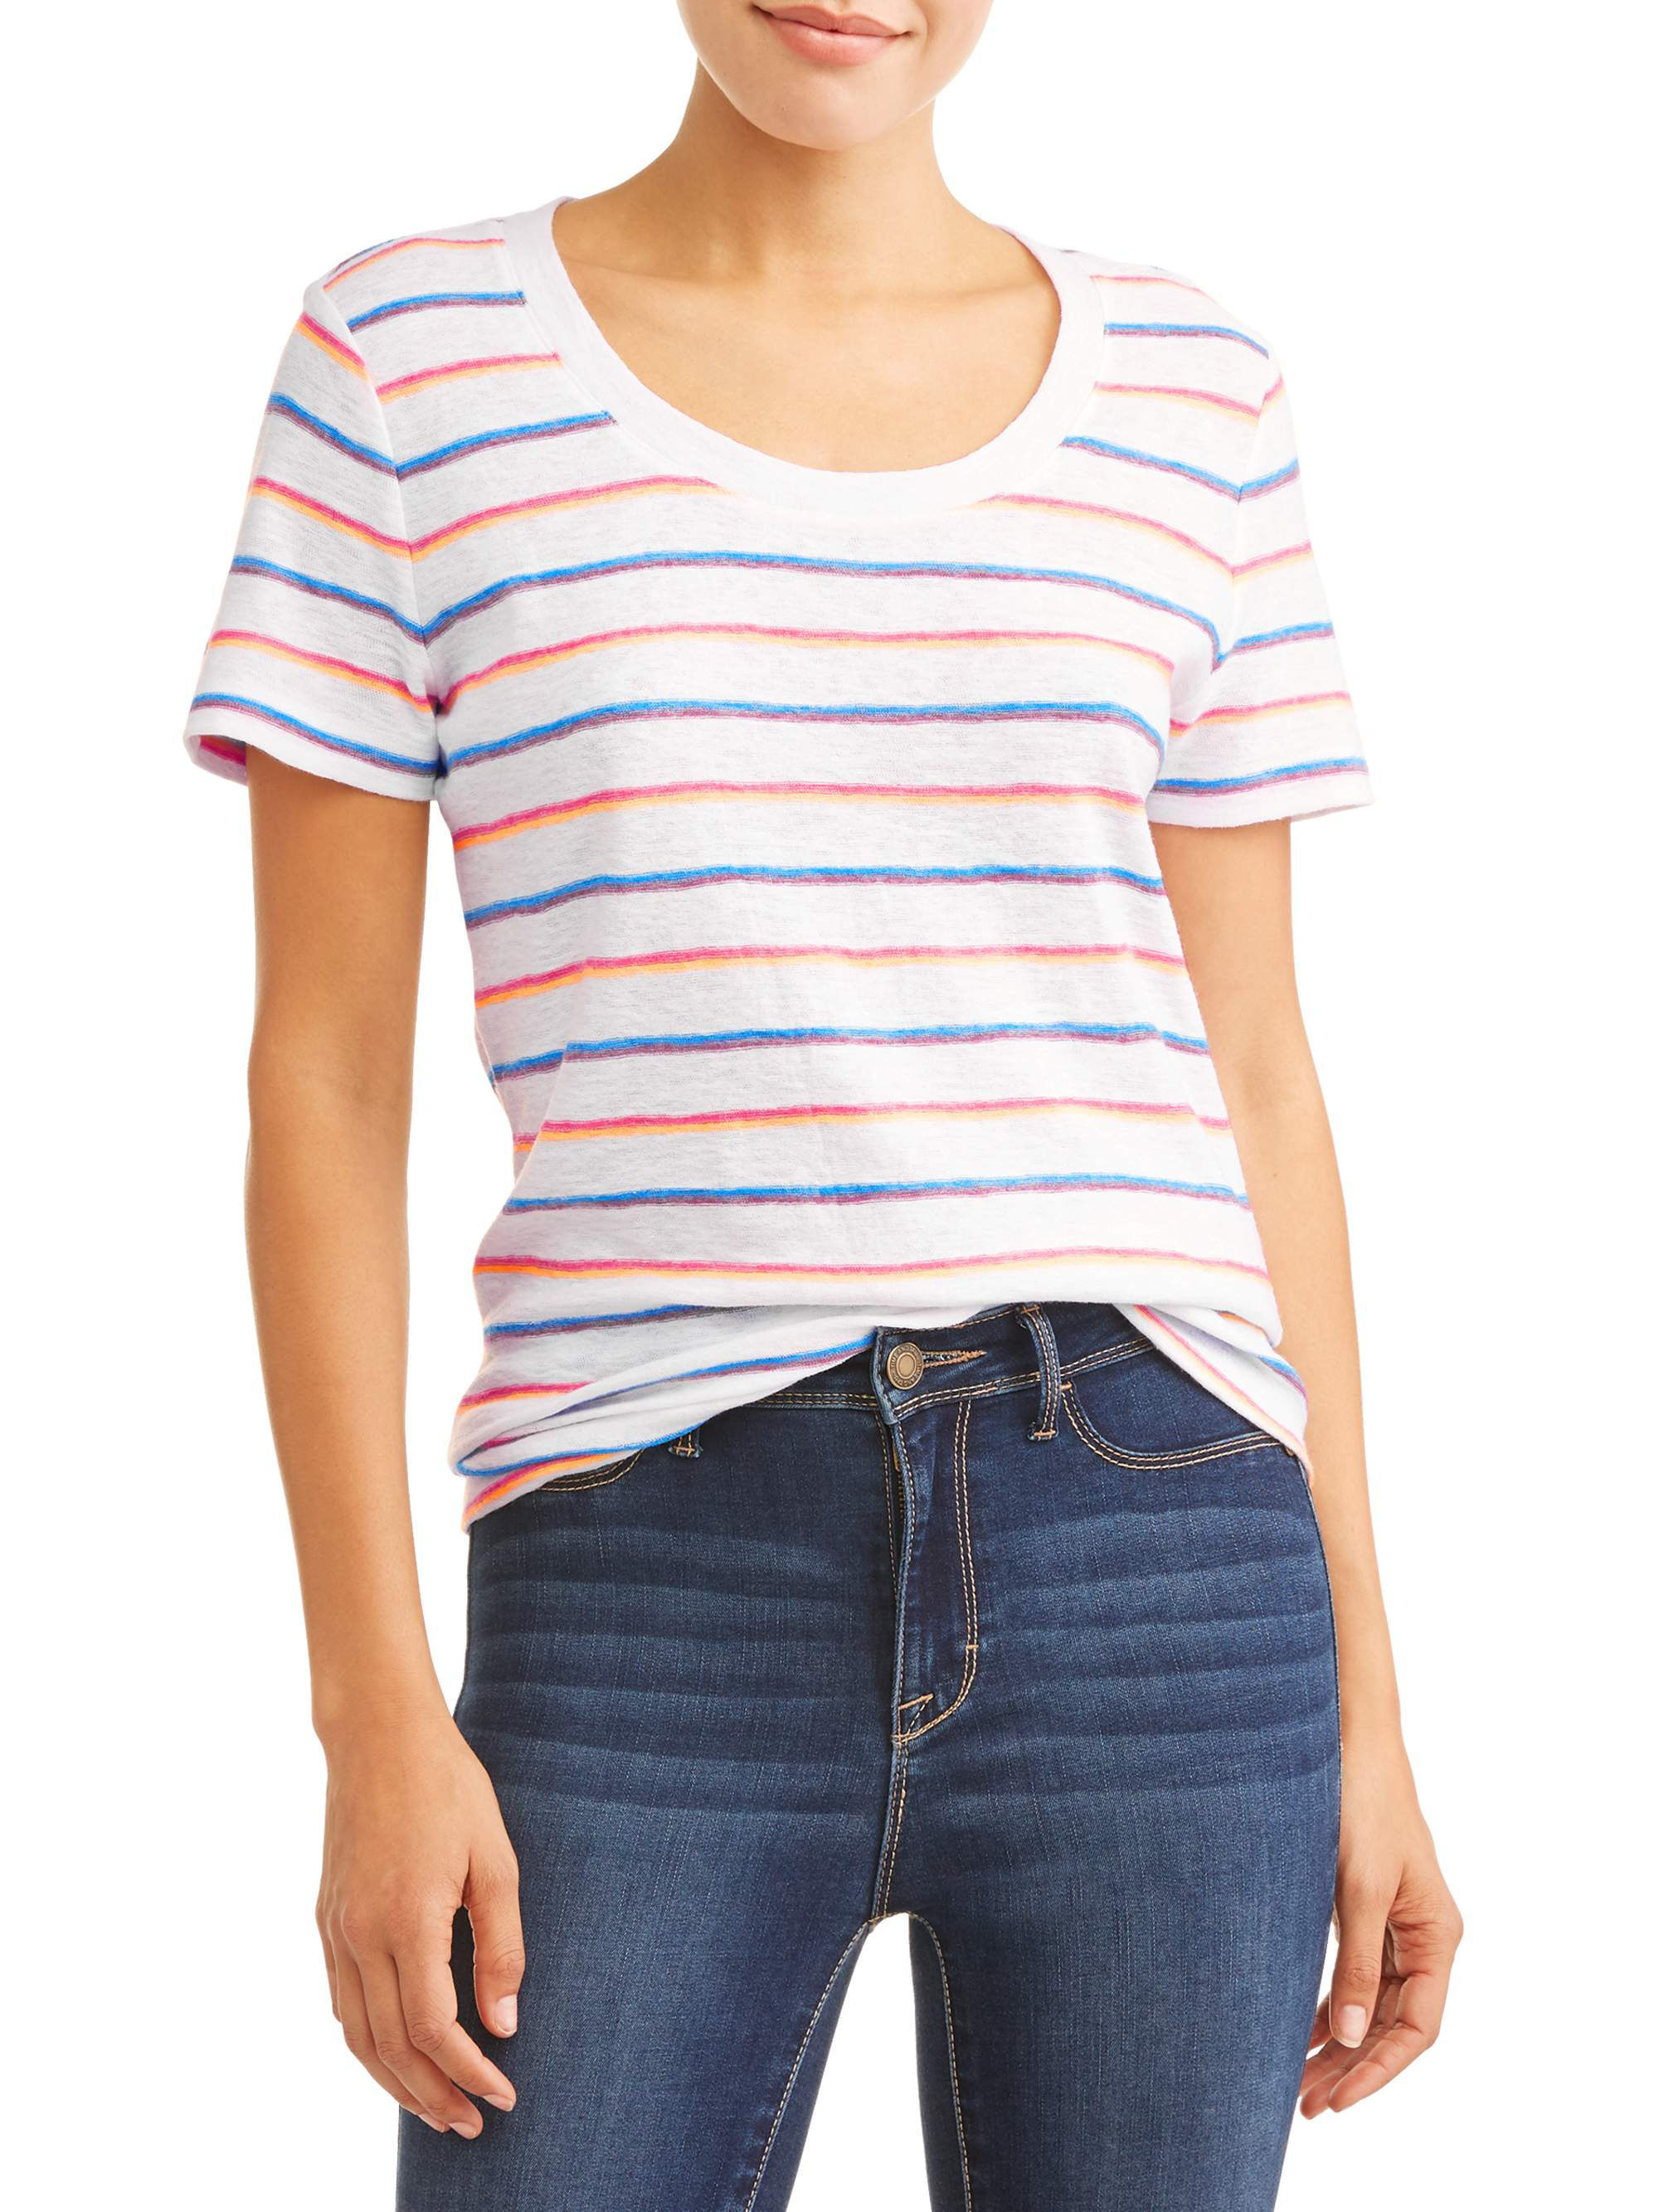 Women's Short Sleeve Striped T-Shirt